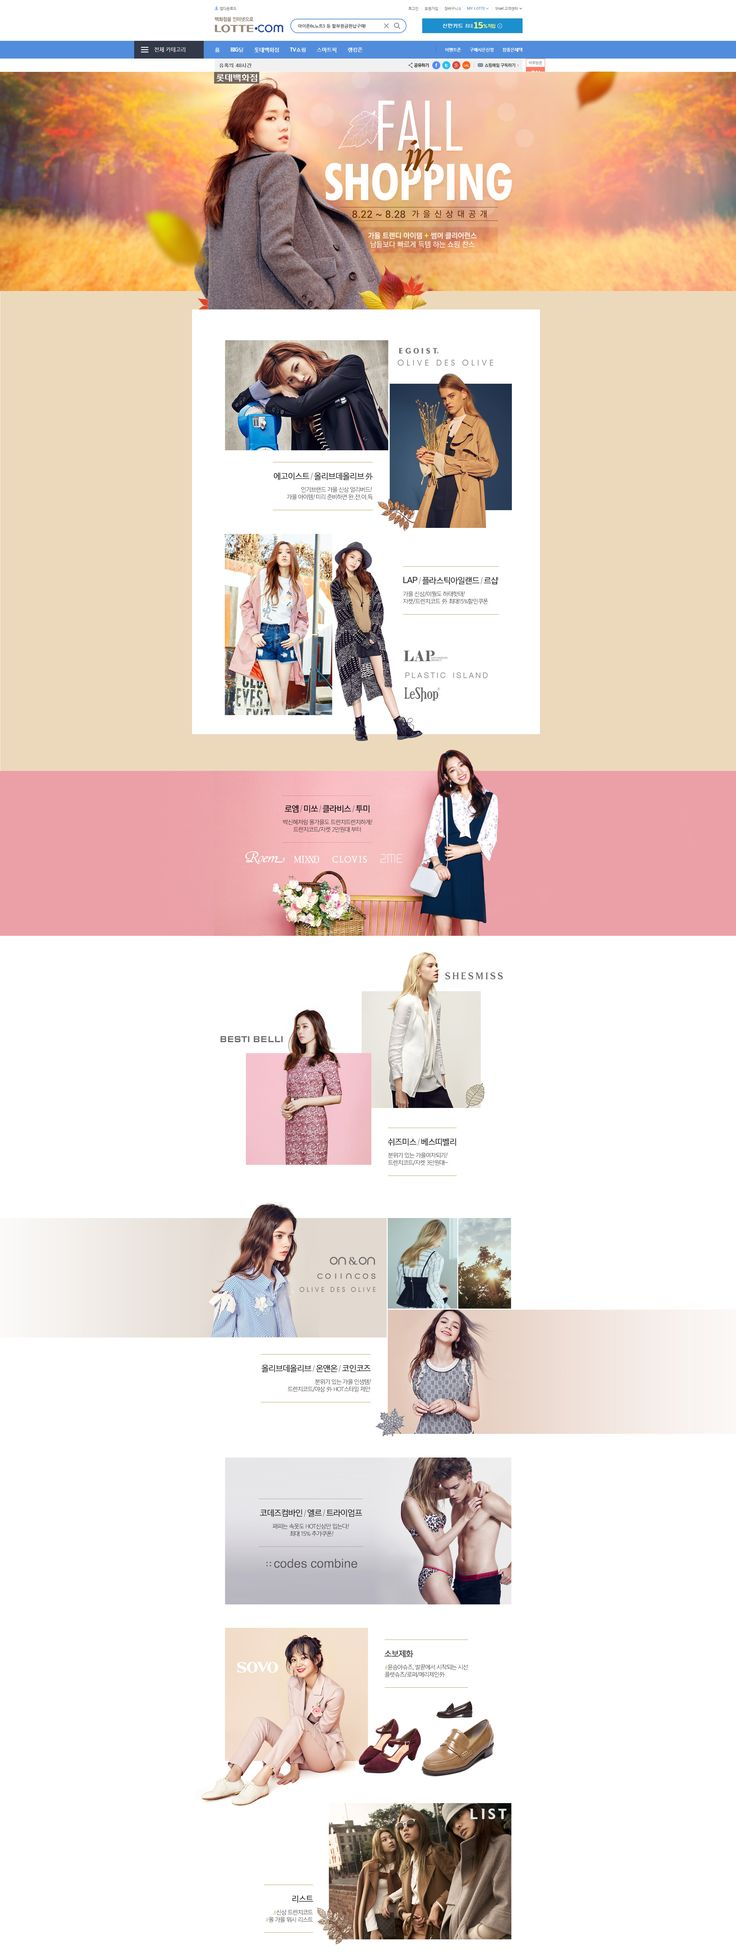 [롯데백화점] FAll in Shopping Designed by 박세미